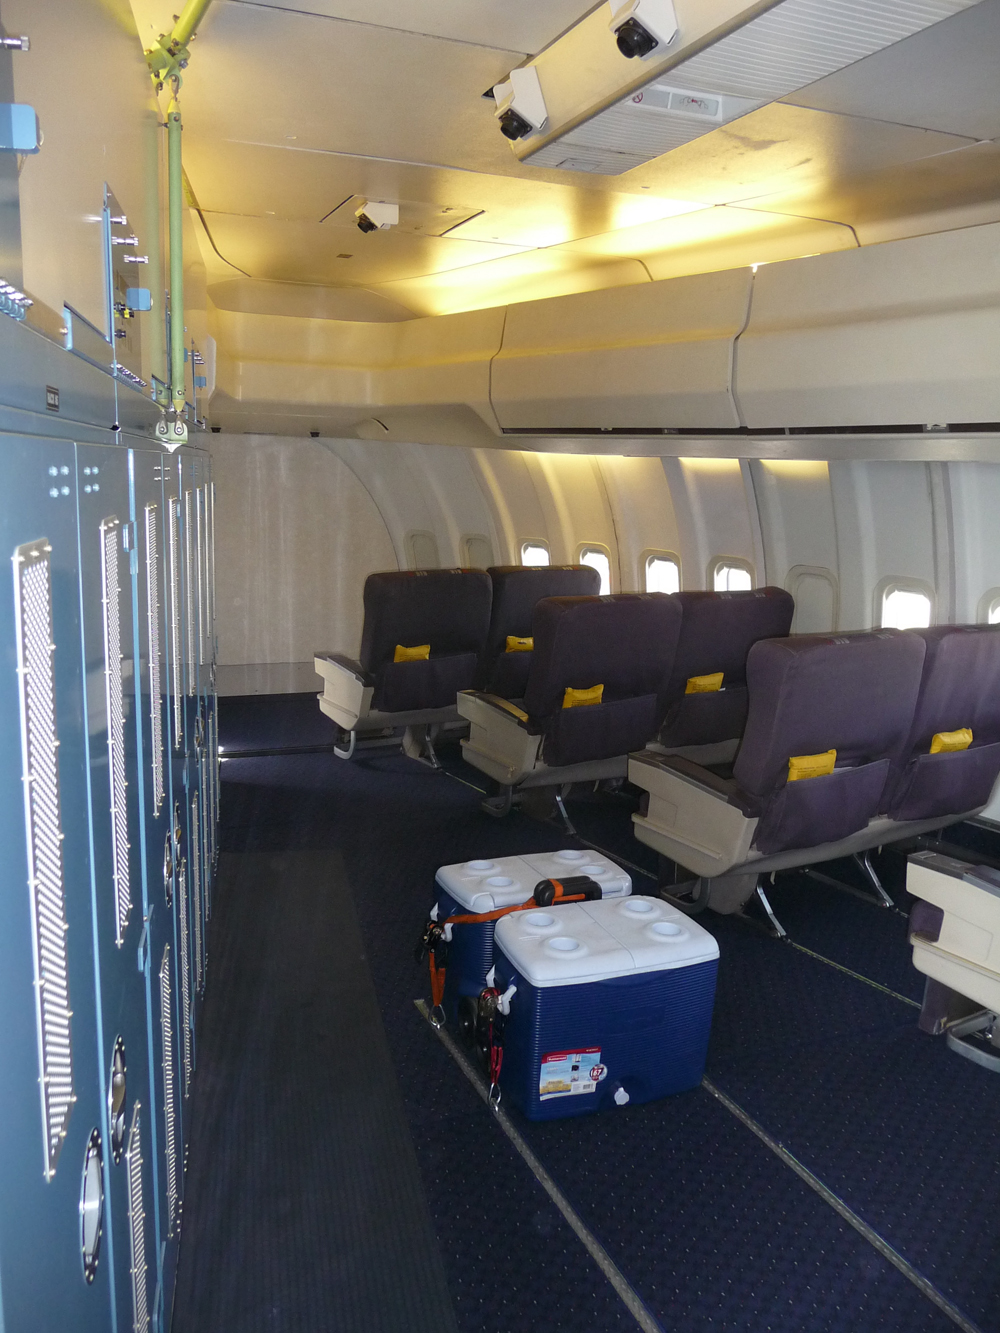 Educators' Seats aboard SOFIA